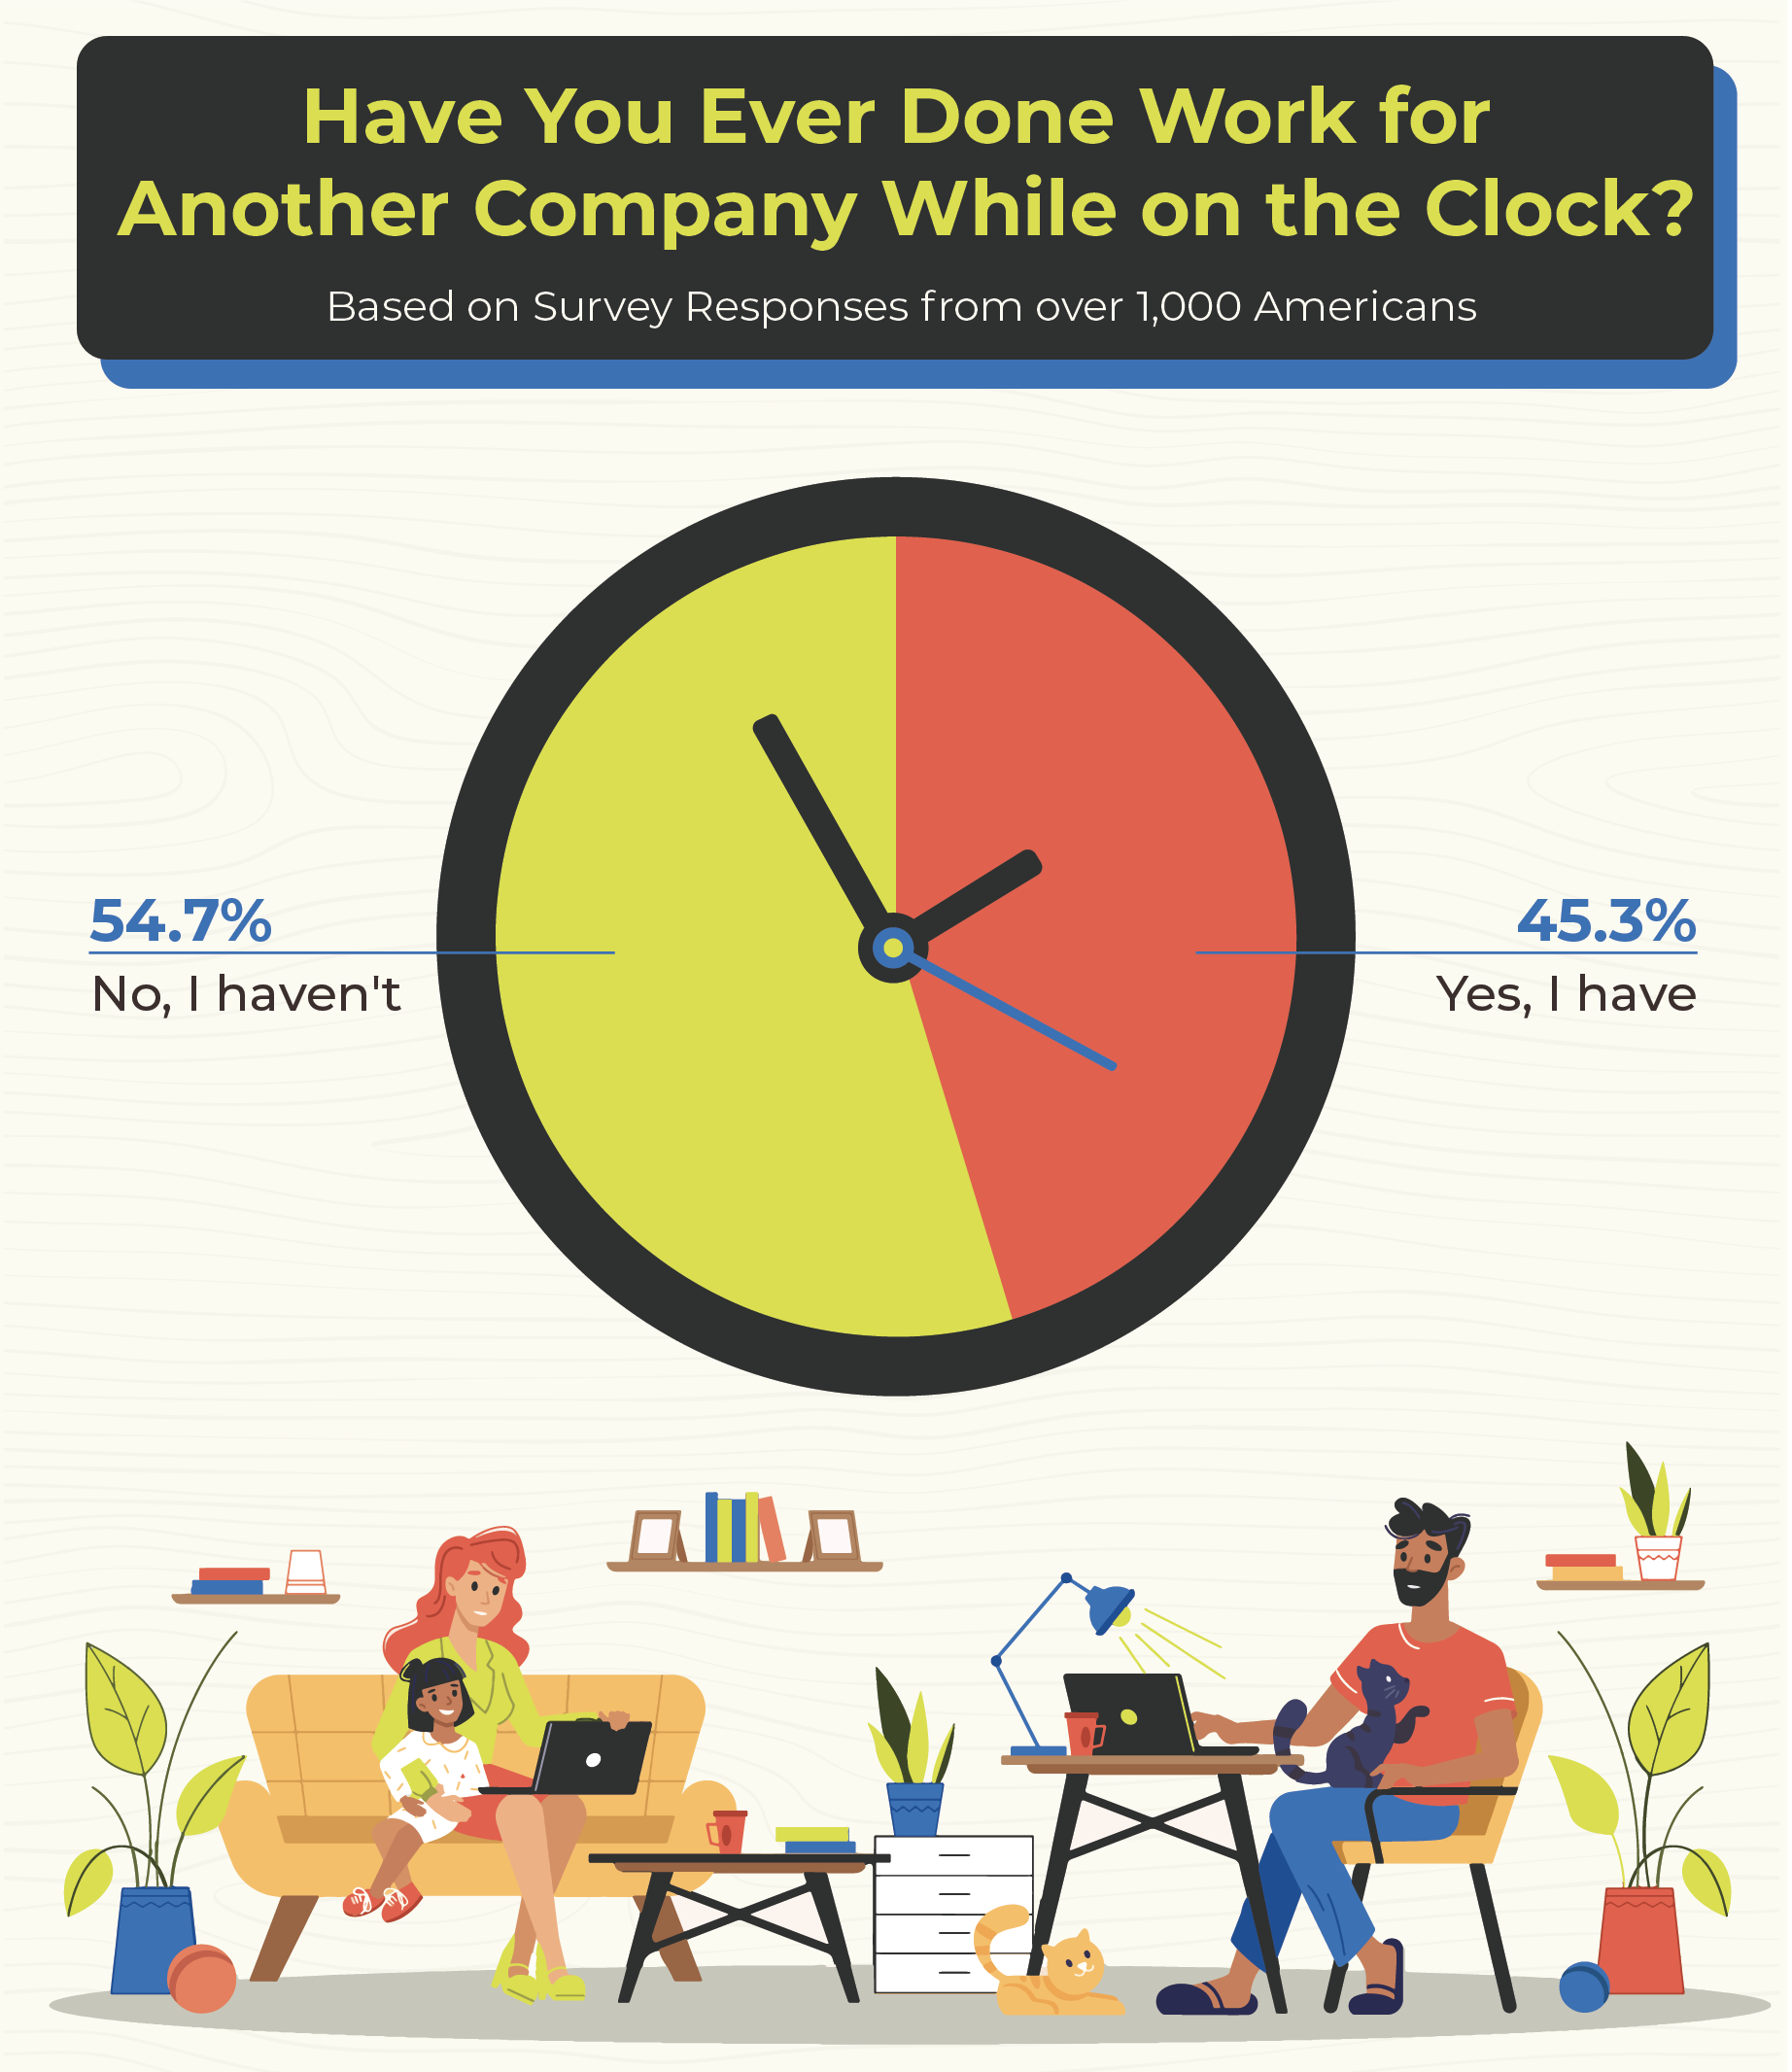 Have You Ever Done Work for Another Company While on the Clock?